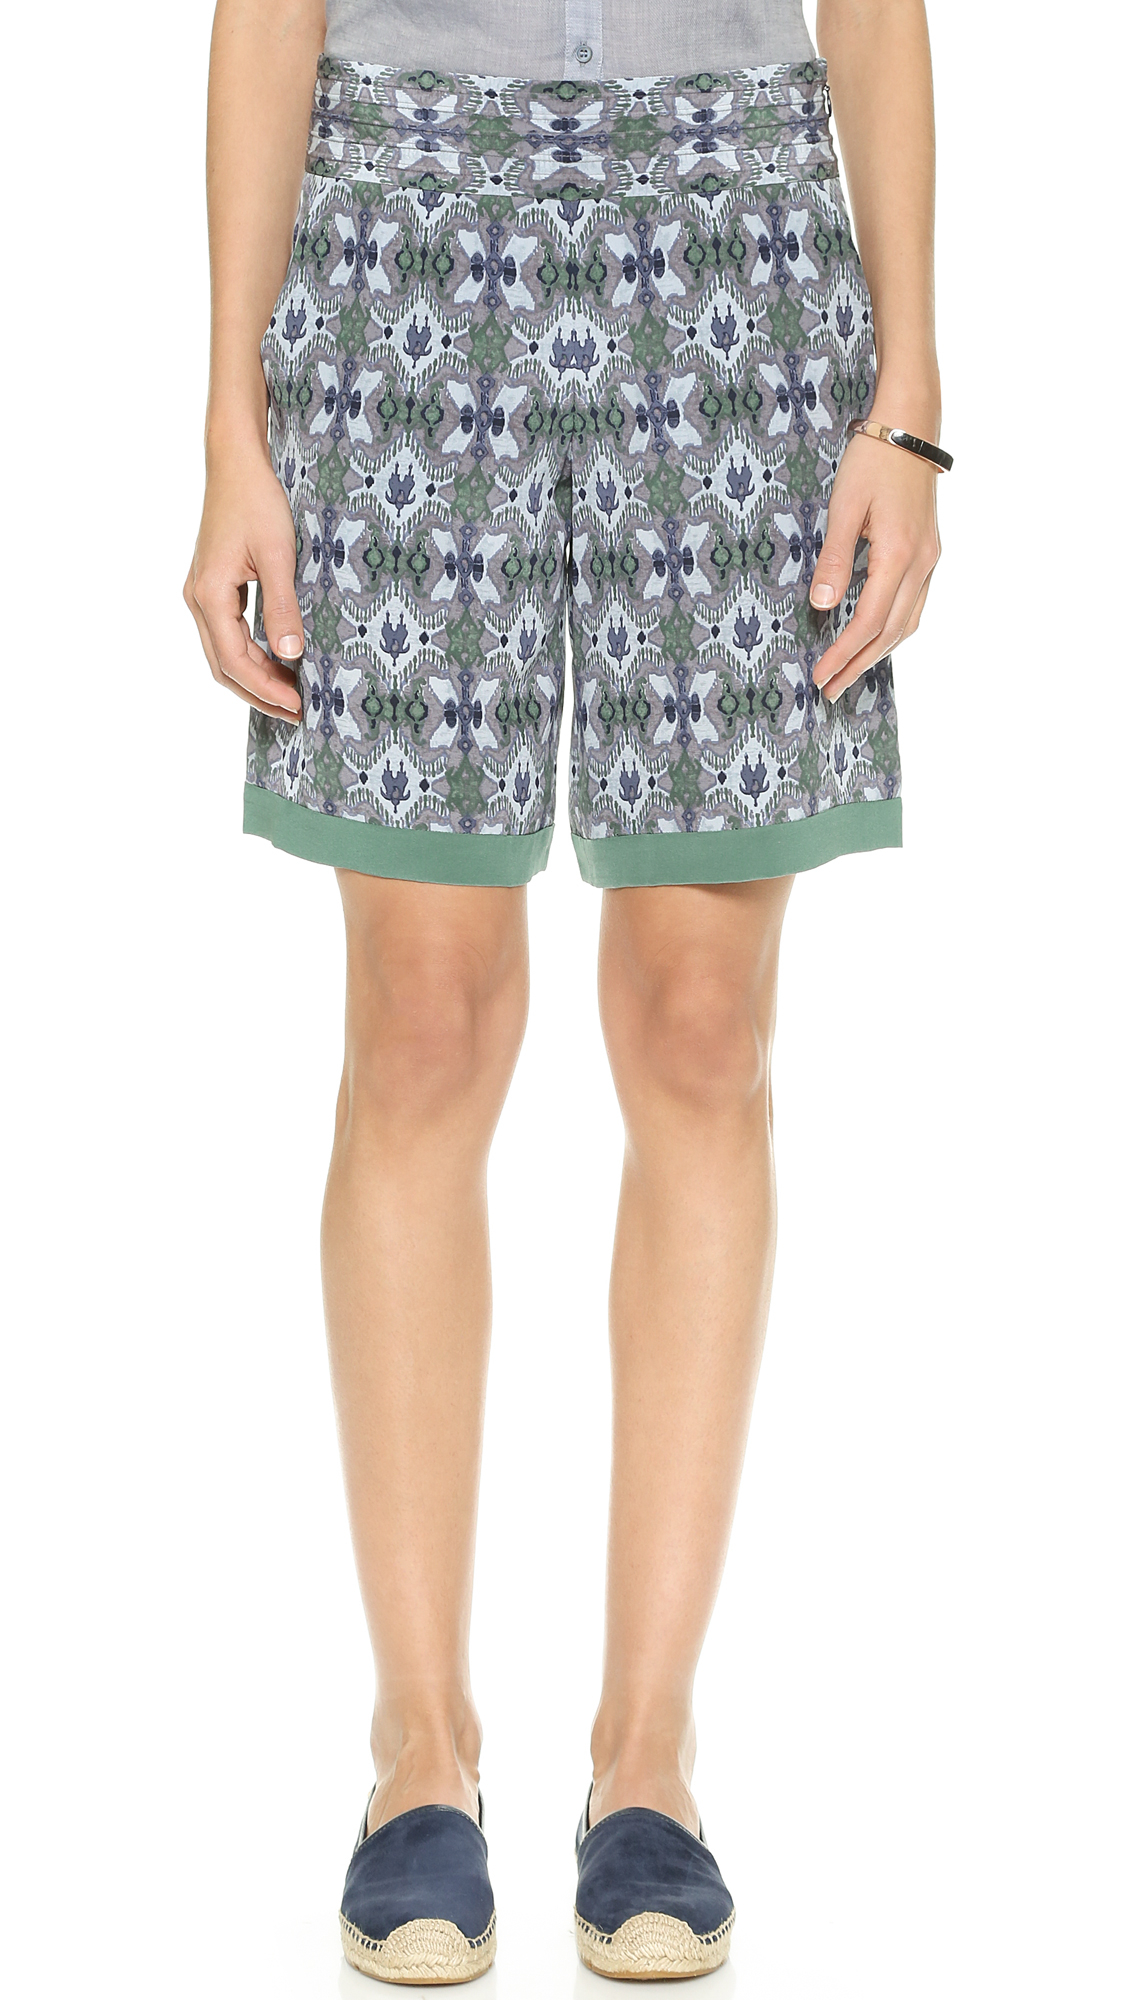 Lyst tory burch merin shorts bedford bukhara in blue for Tory burch fashion island